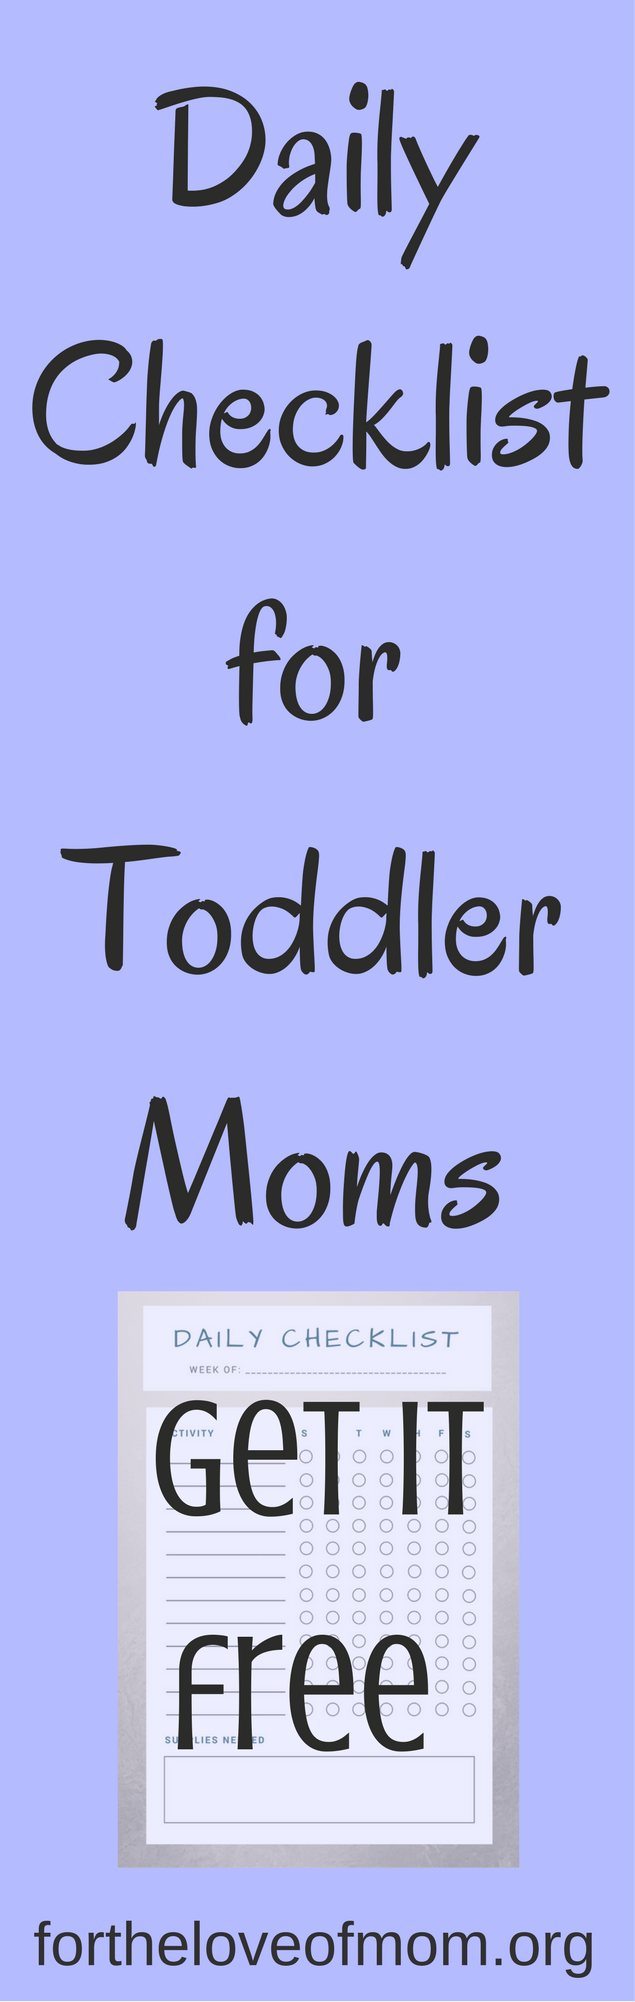 Daily Checklist for Toddler Moms (2).png